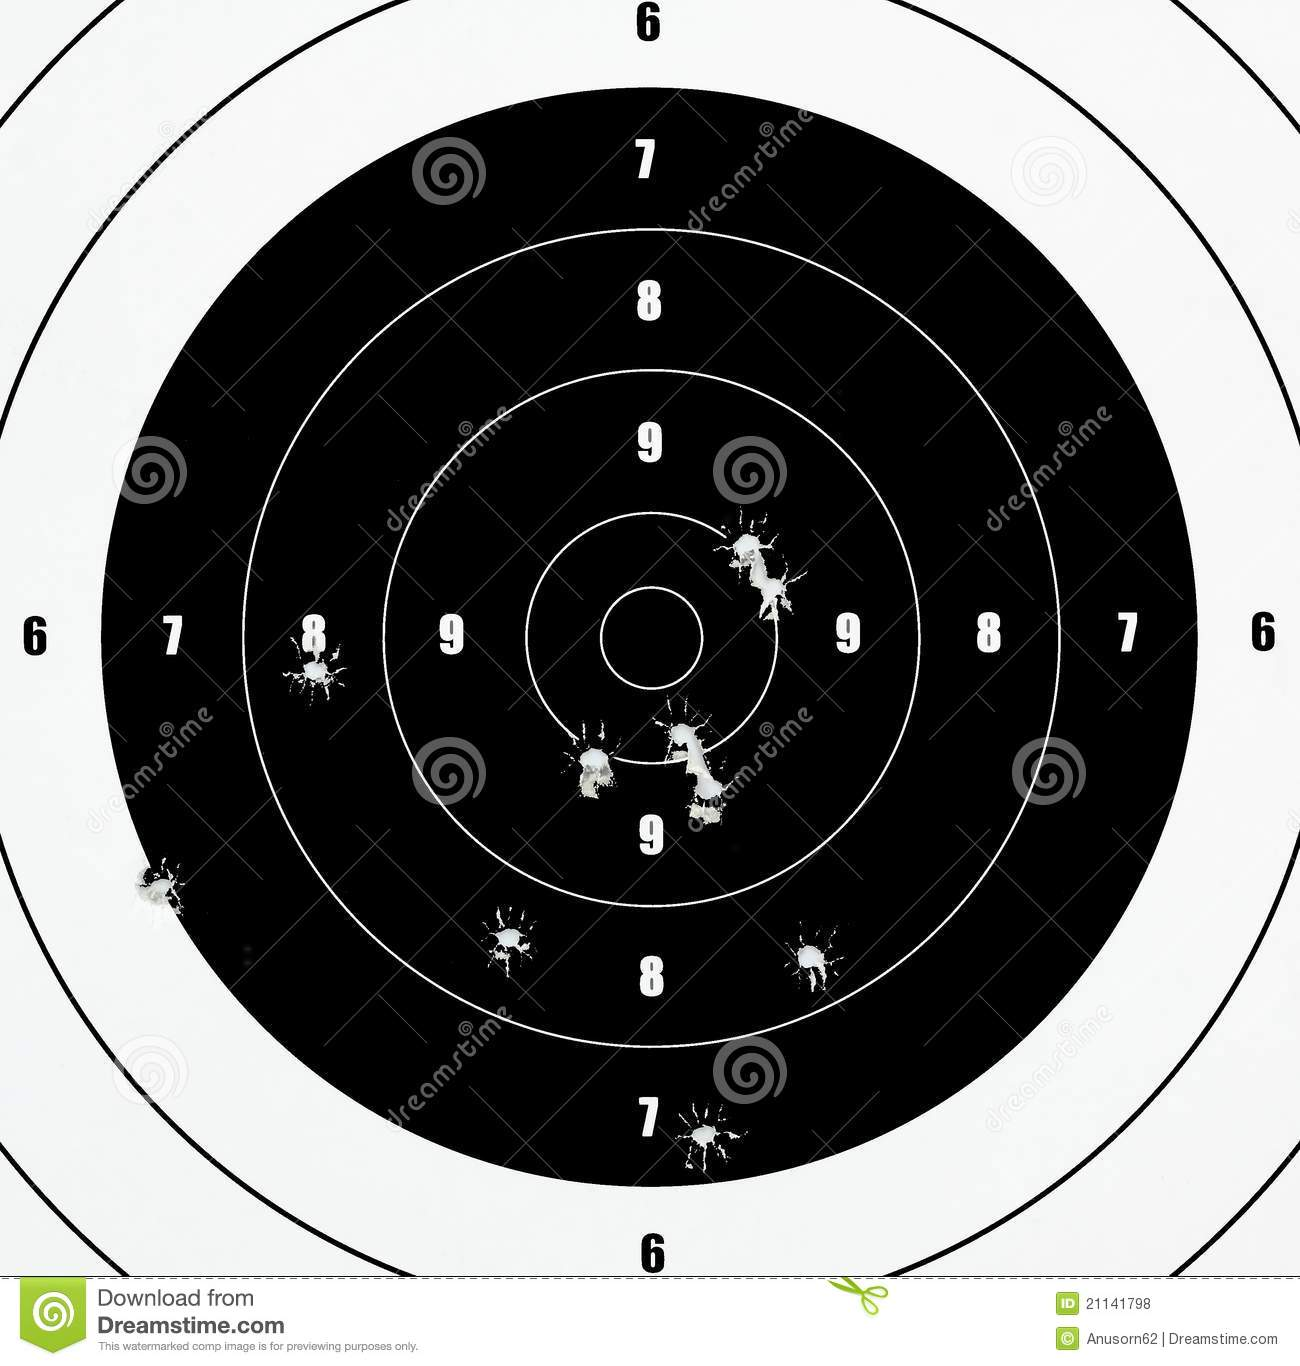 It's just an image of Striking Target Practice Sheets